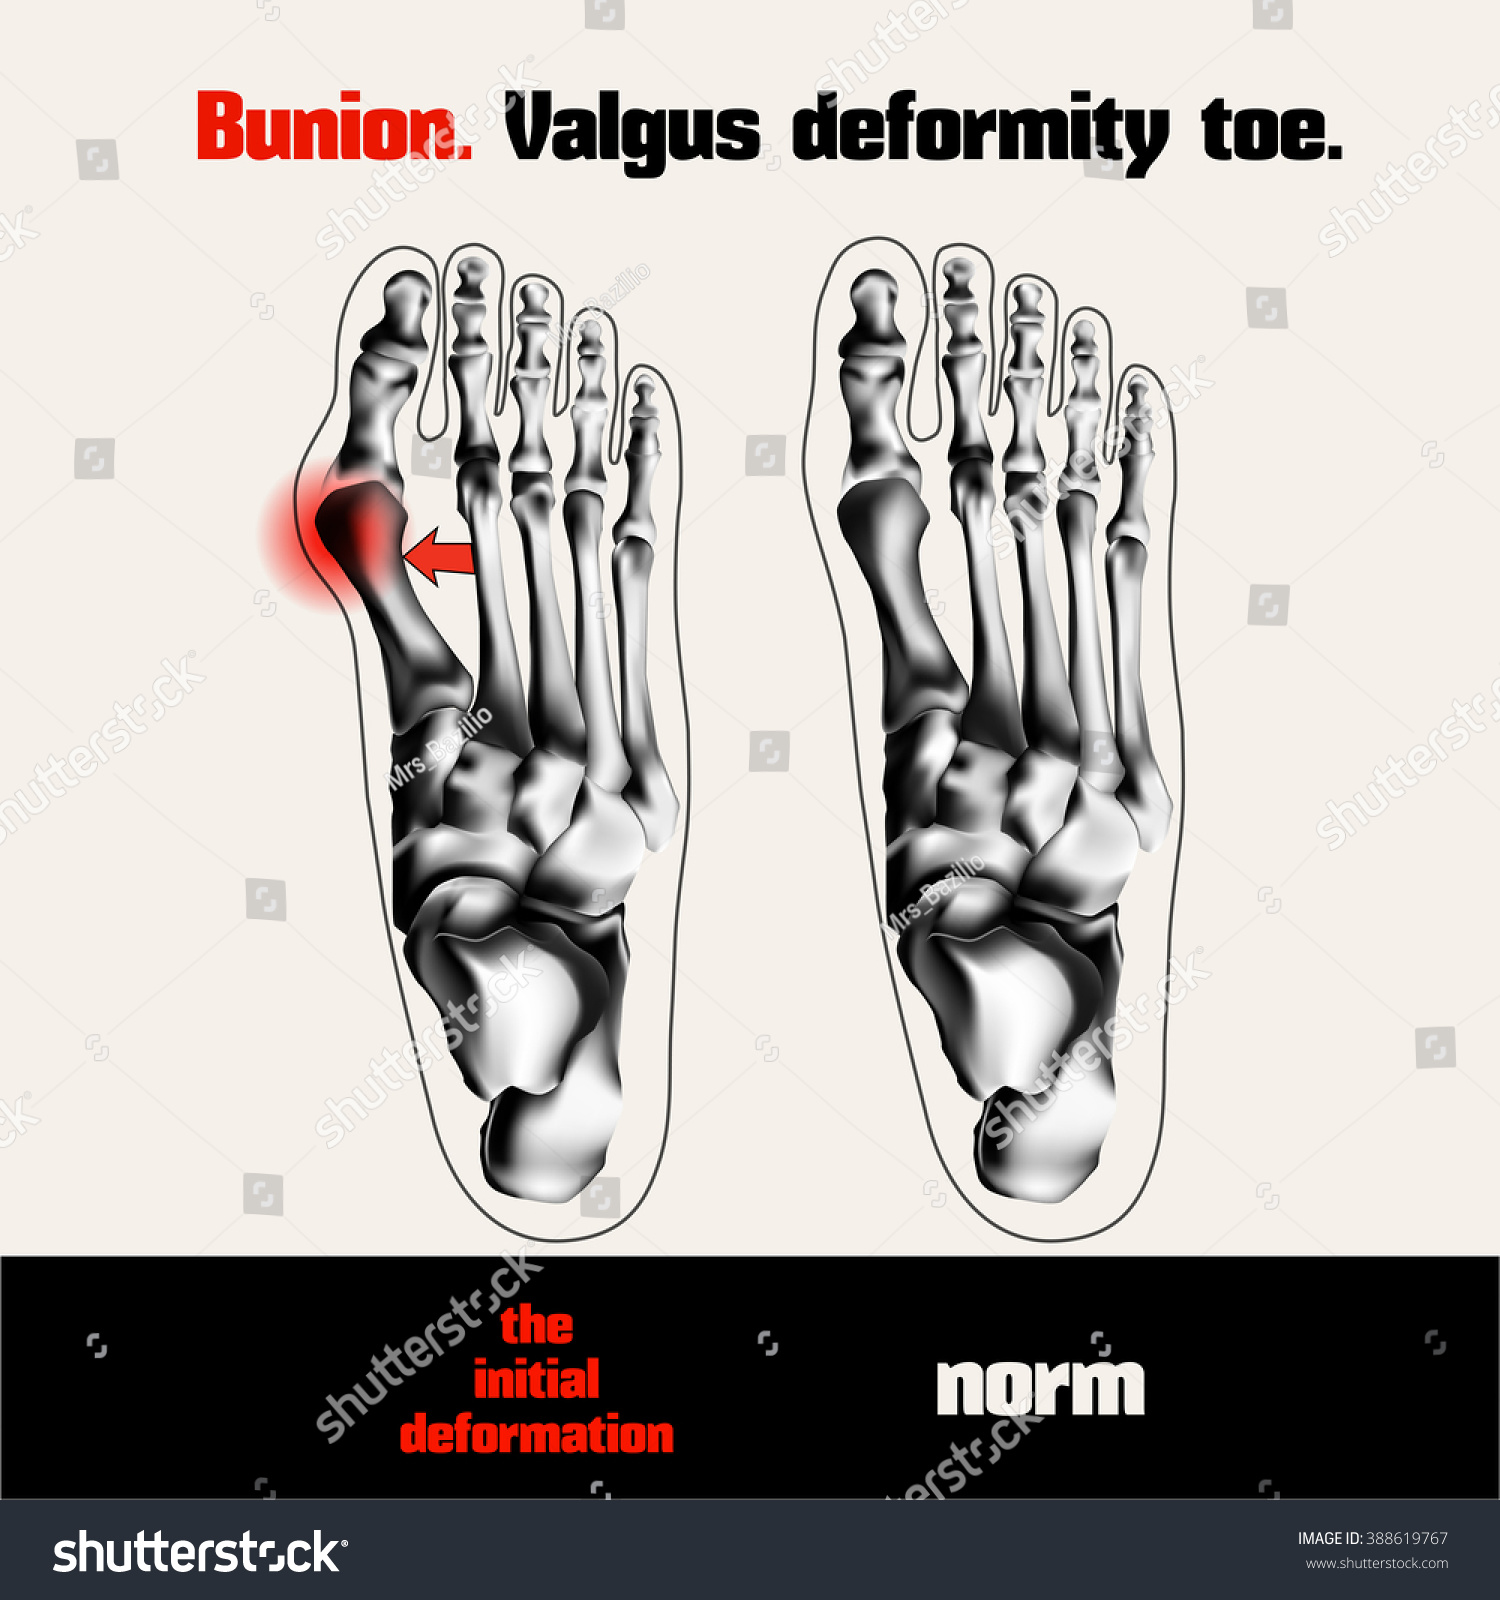 Bunion Valgus Deformity Toe Stock Vector HD (Royalty Free) 388619767 ...